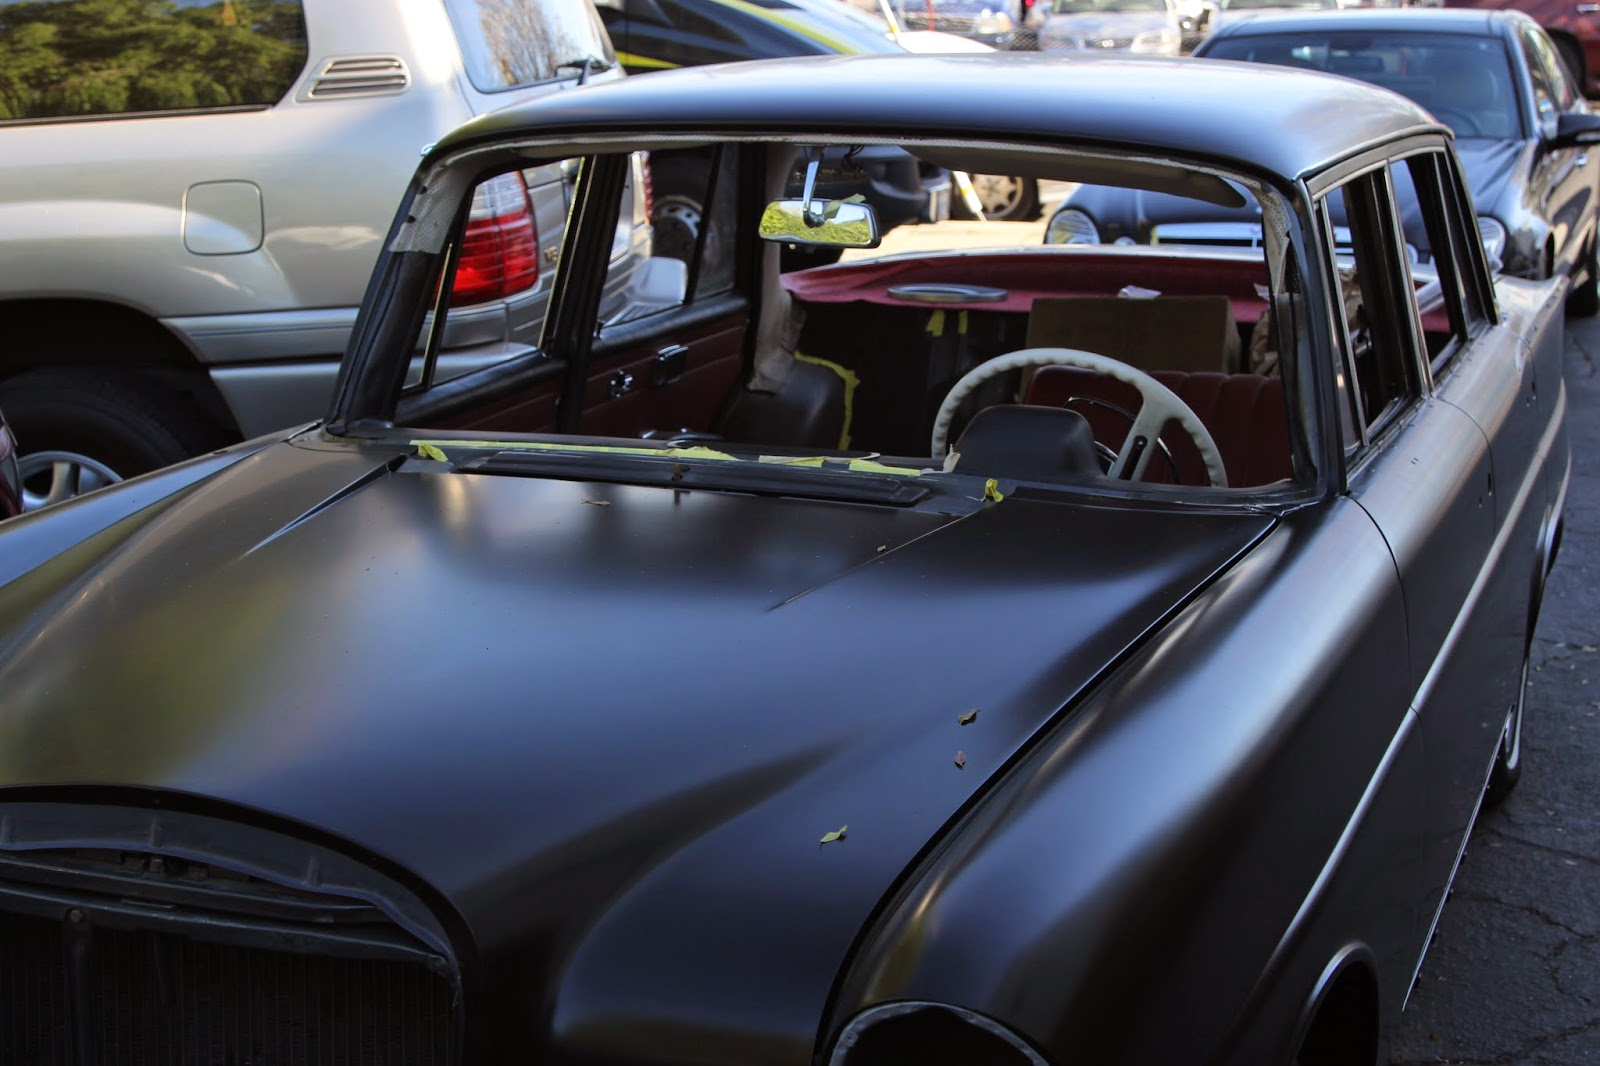 This Project We Are Restoring The Interior Of Vintage Mercedes